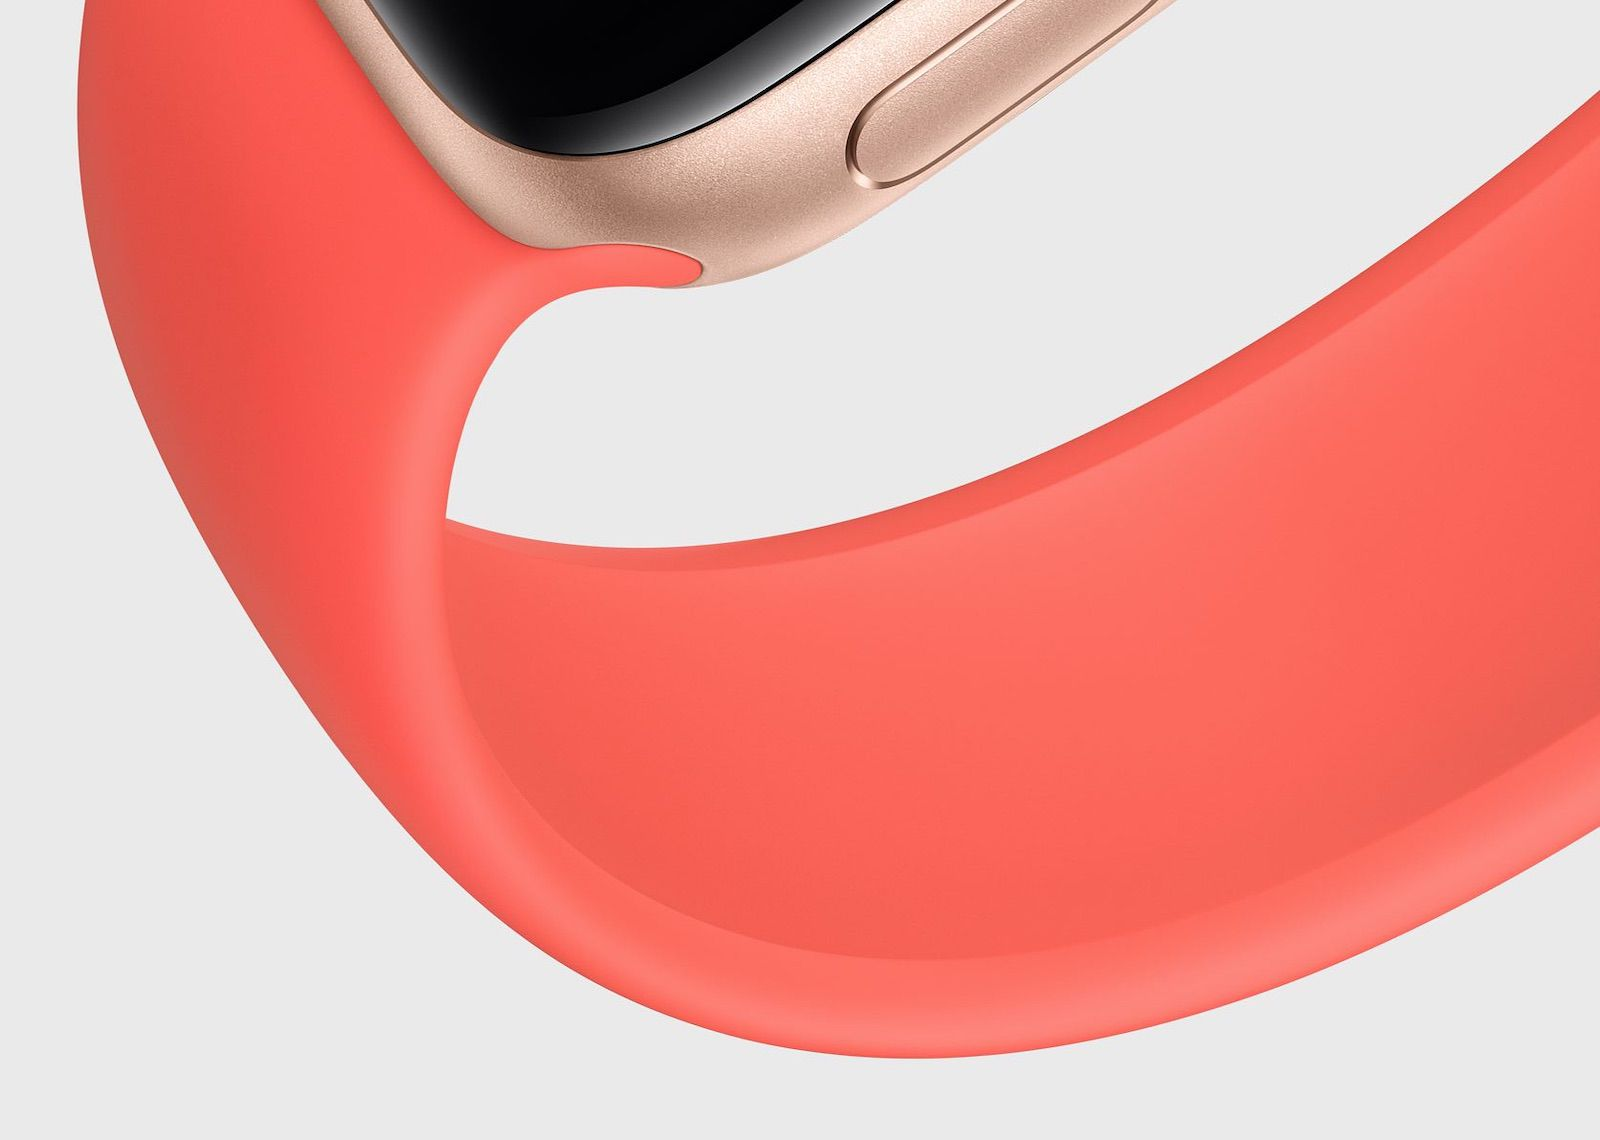 Apple Emphasizes That Solo Loop May Increase in Length Over Time, Updates Sizing Guide With More Specific Instructions